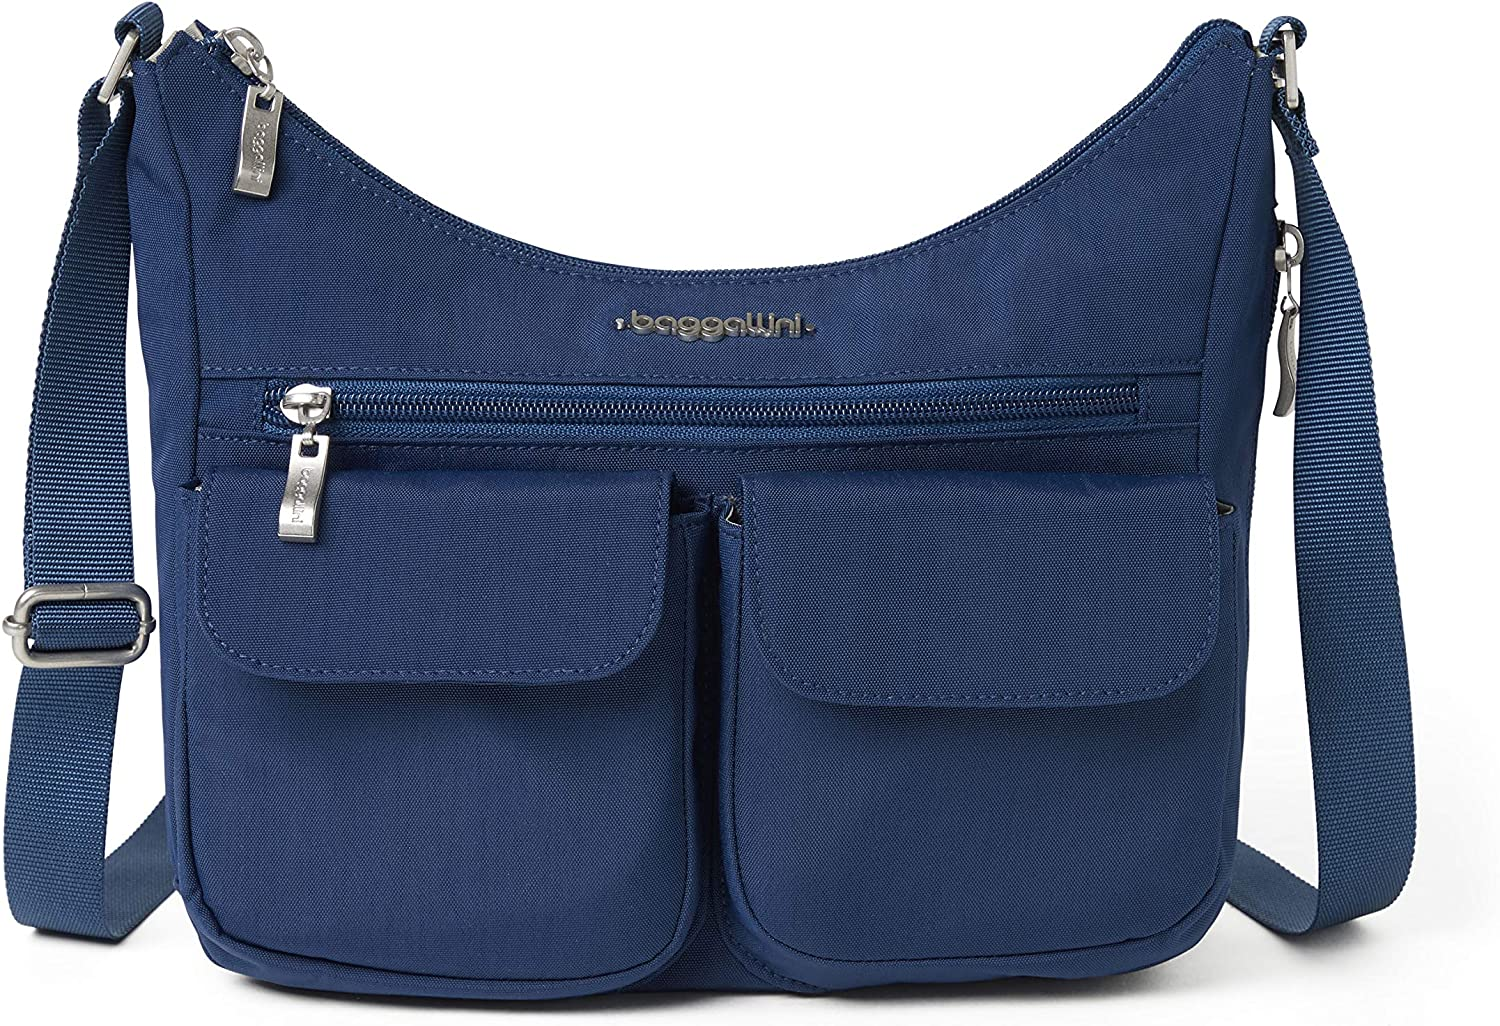 Baggallini Small 2021 spring and summer new Rare Bag Everywhere